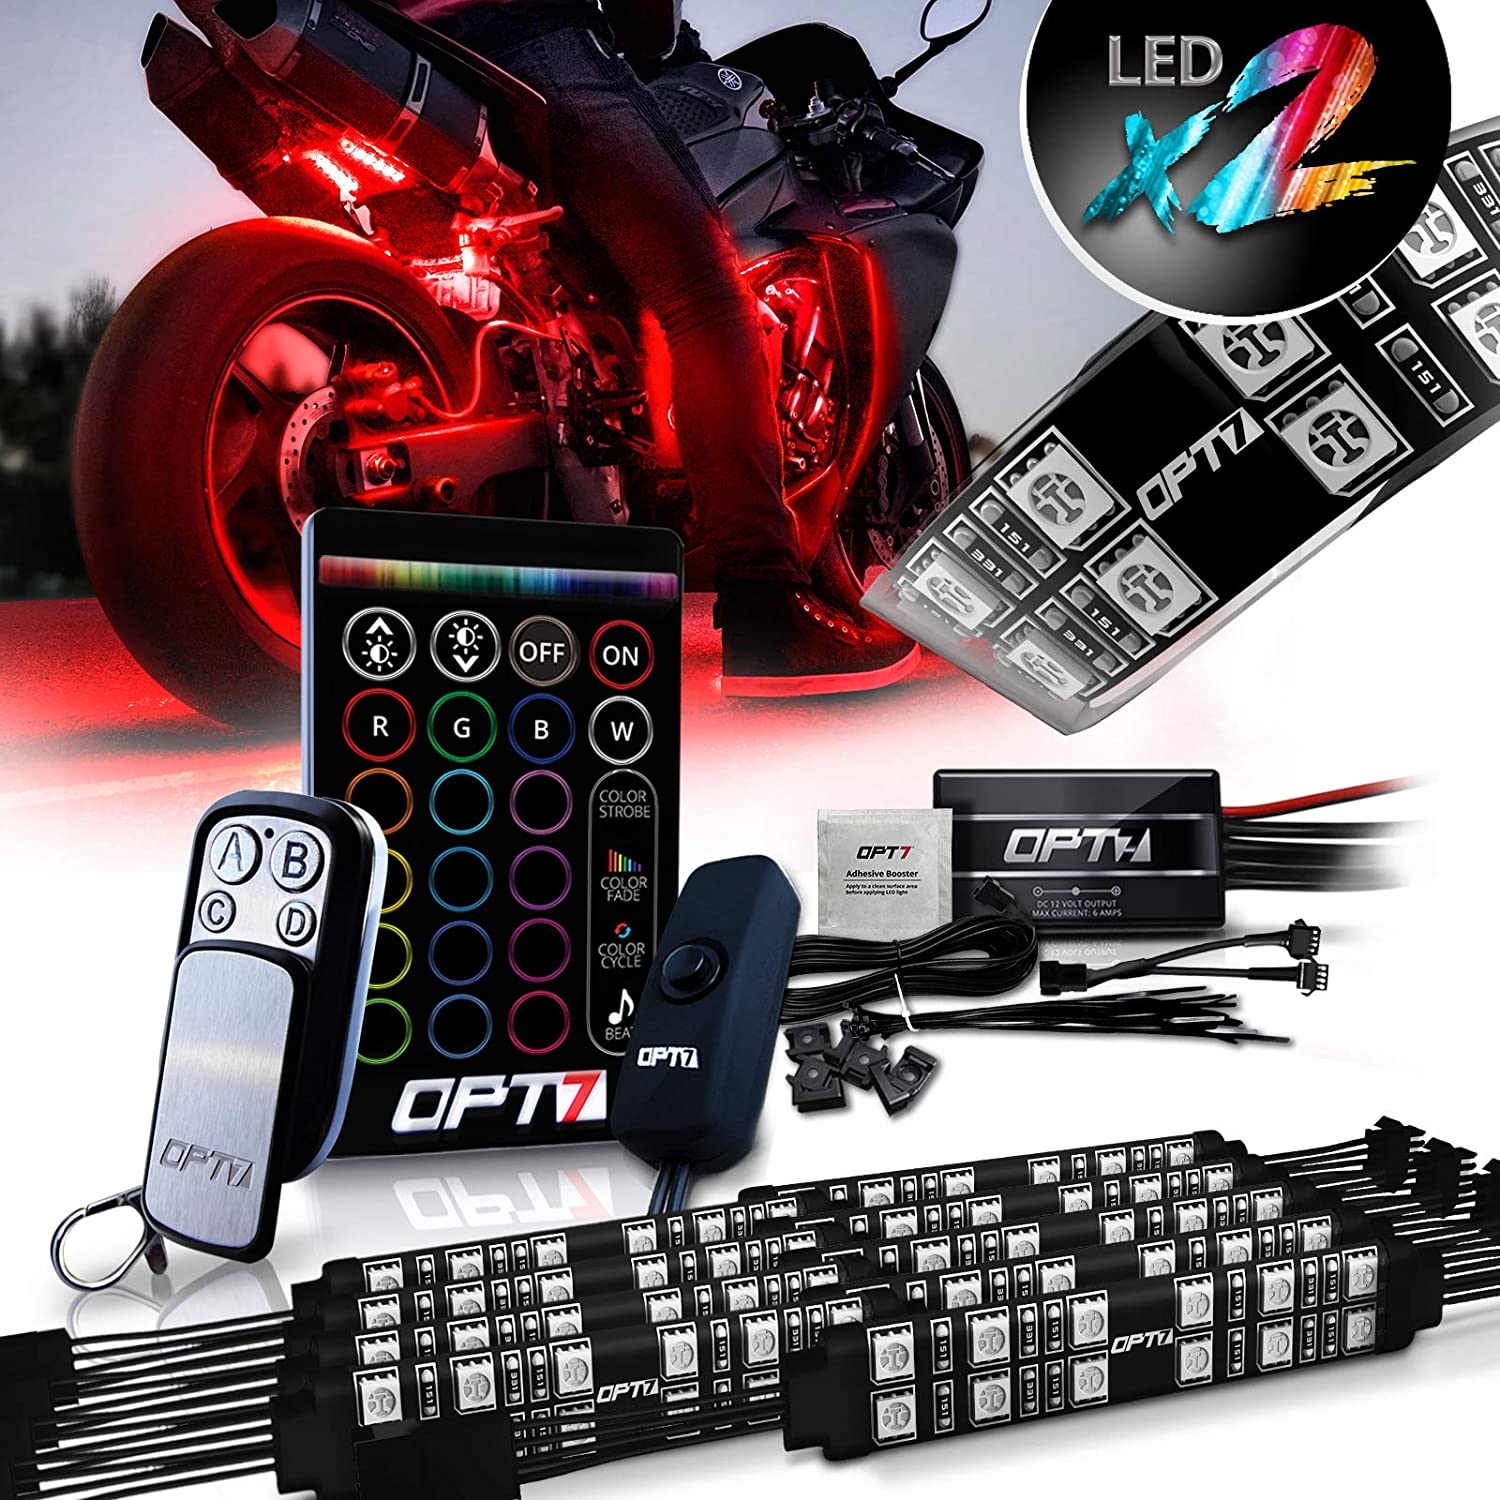 OPT7 Aura Motorcycle LED Light Kit with Wireless Remote Controller | RGB Multi-Color Strips Atmosphere Light w/Switch for Sportsbike, Cruiser, 10pc Double Row